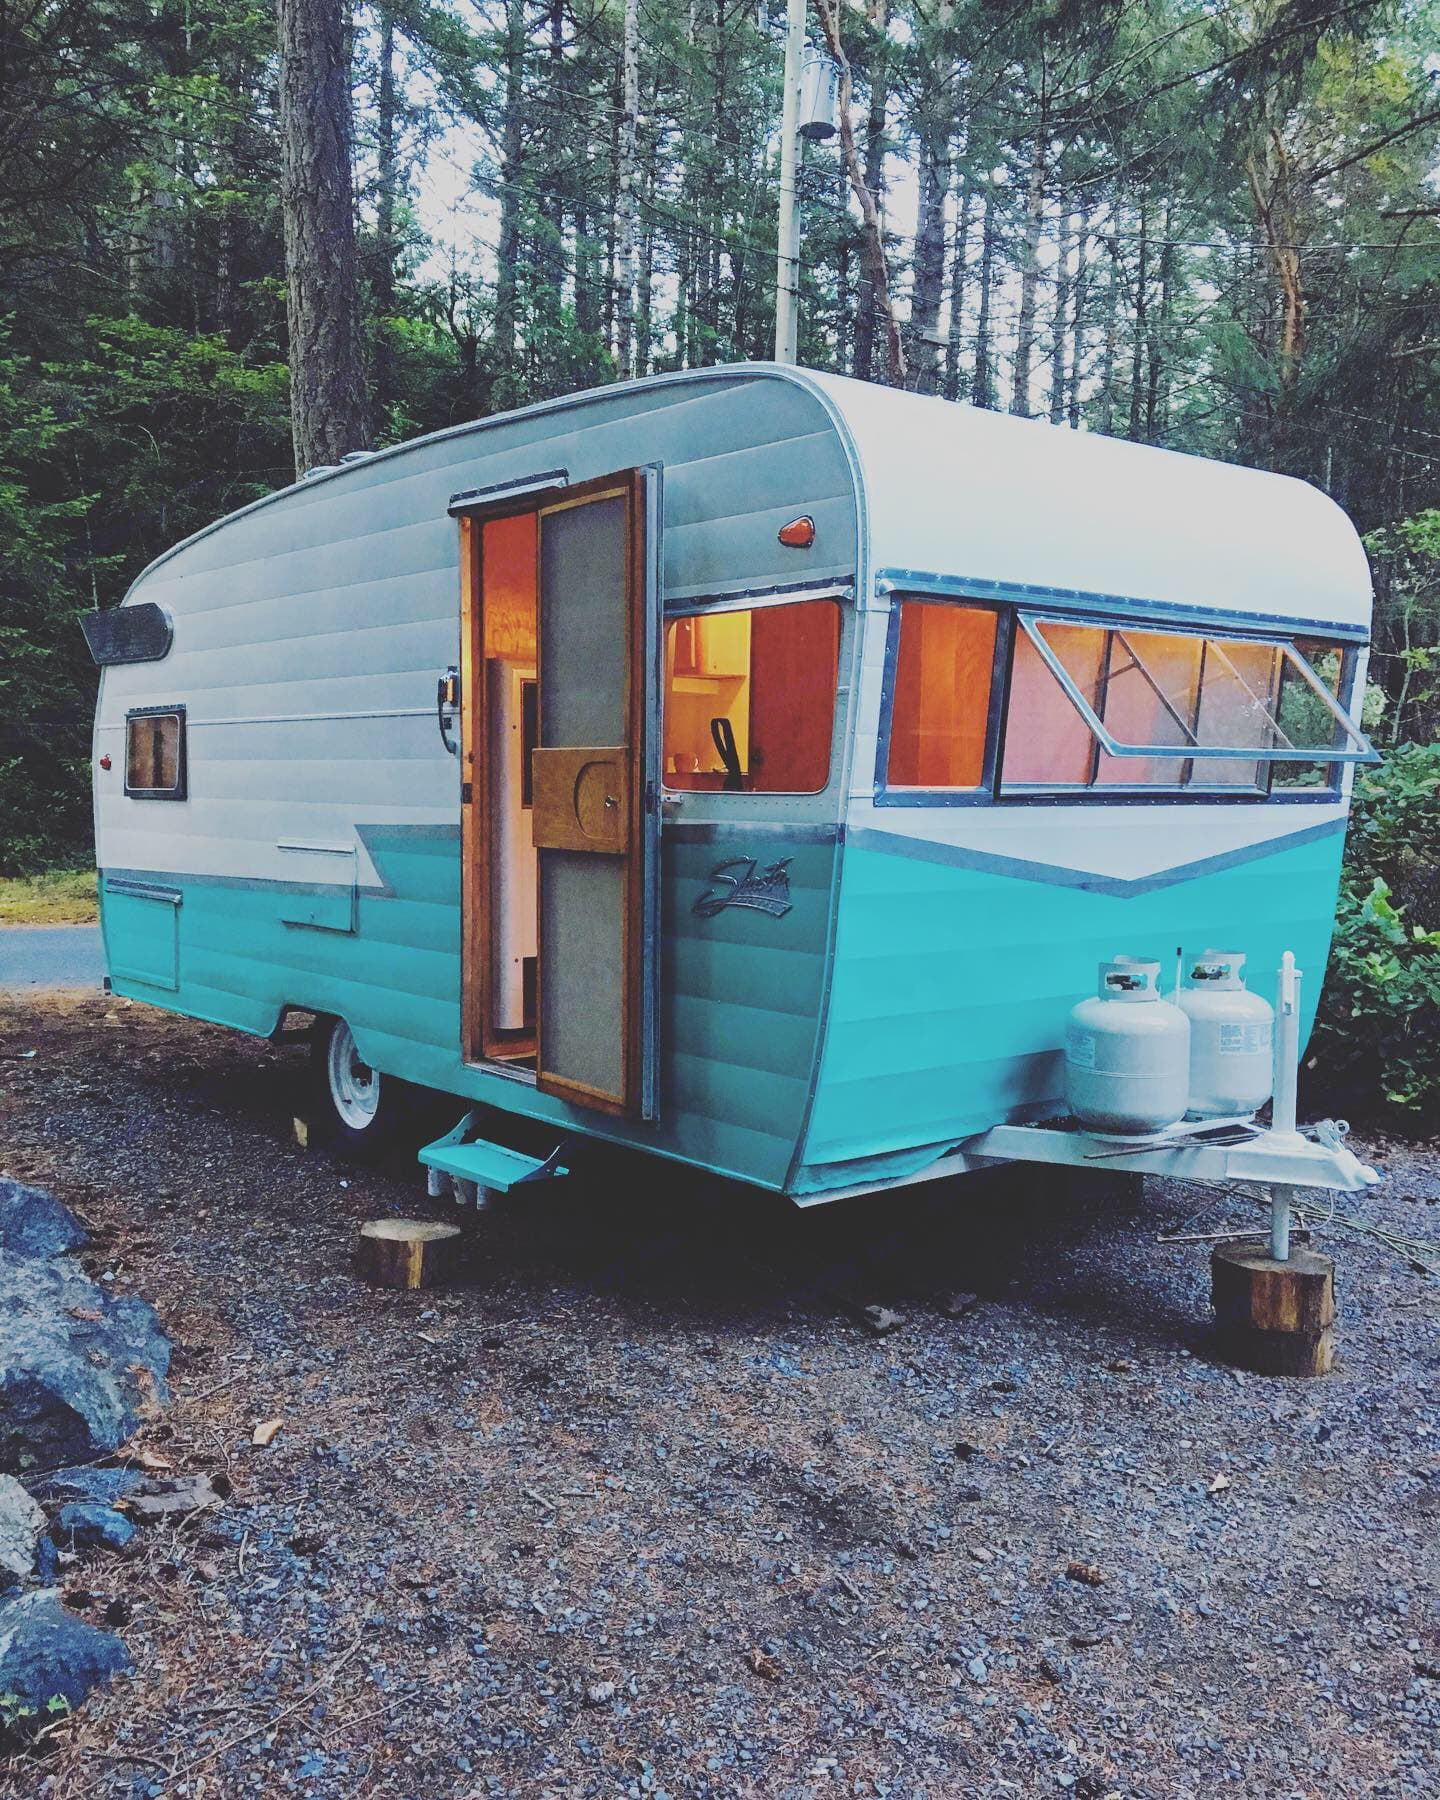 Outside Glow at Dusk . Shasta Deluxe (airflyte) 1960